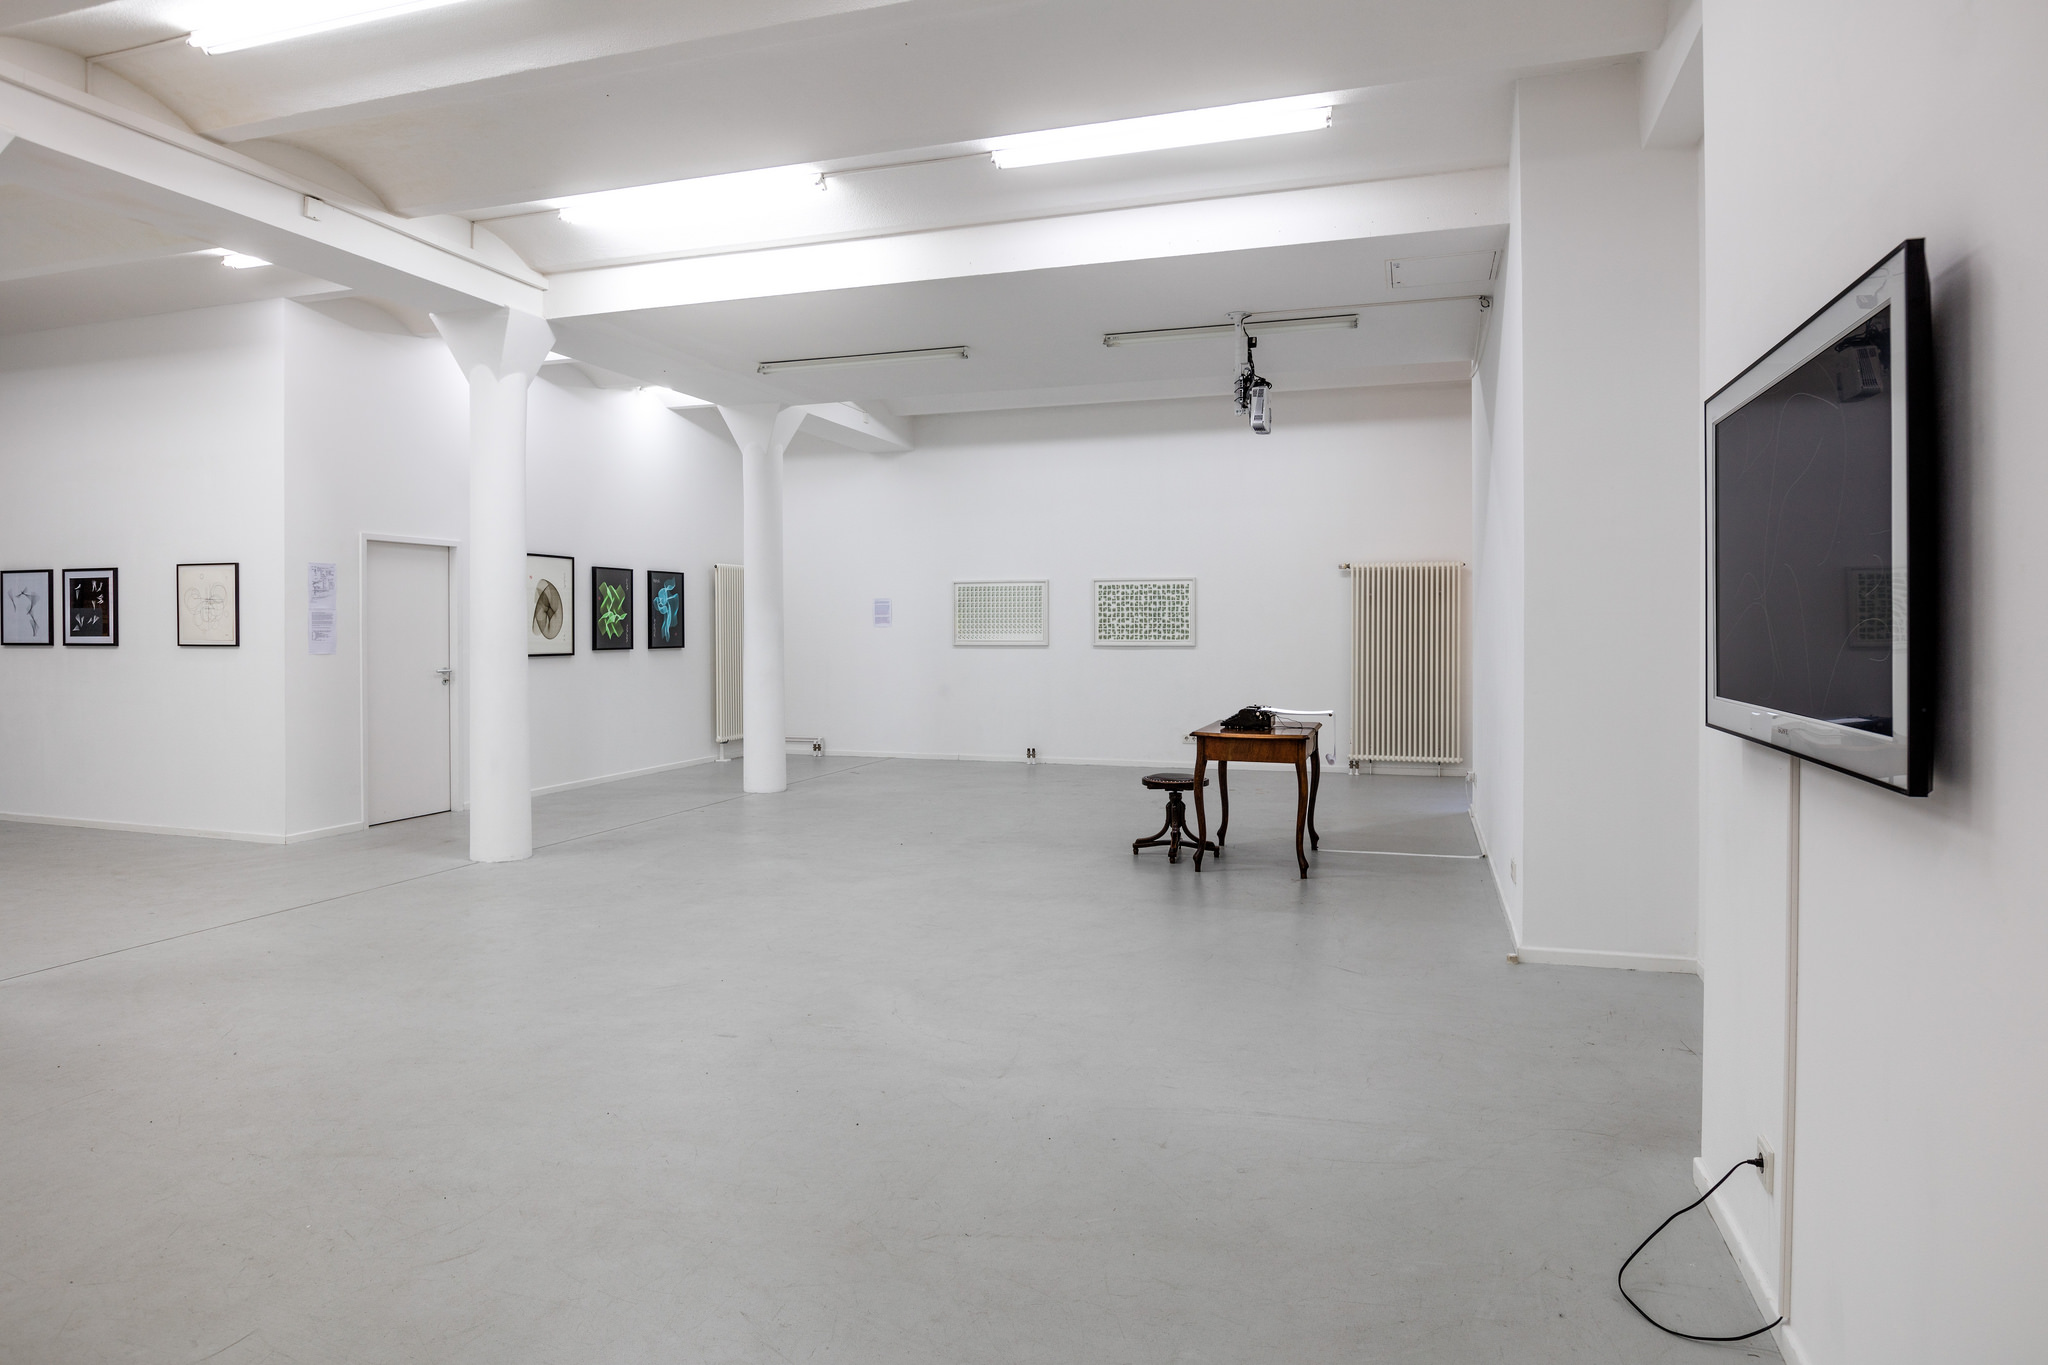 Code+Poetry, group show, 2016, installation view